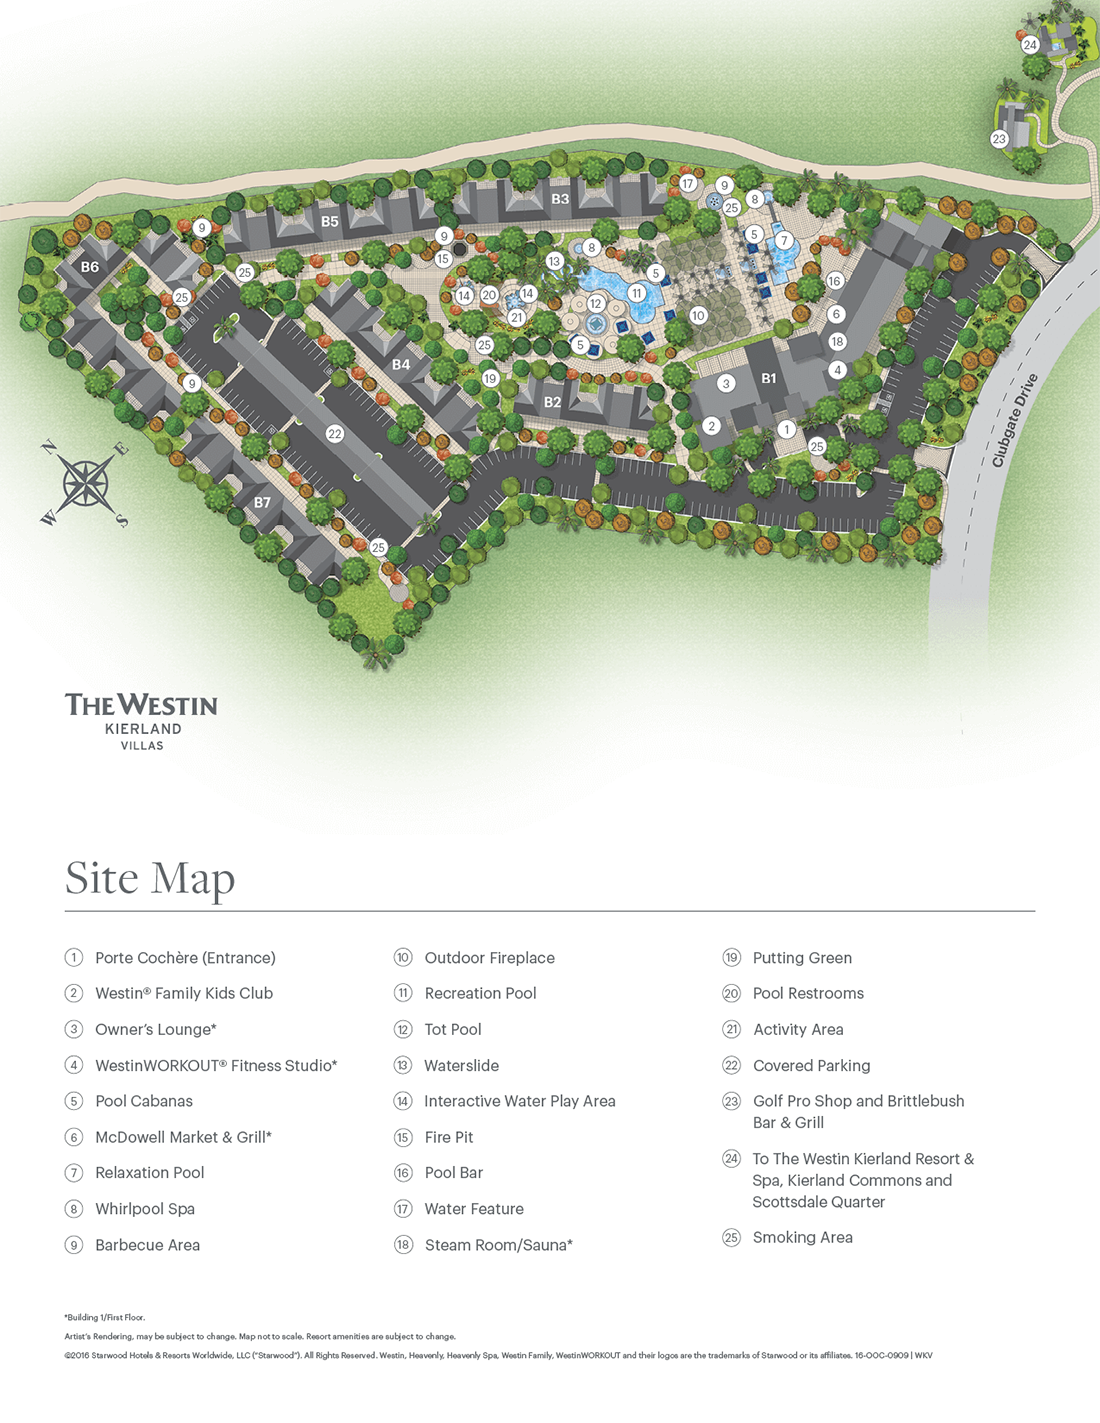 The Westin Kierland Villas Resort Map